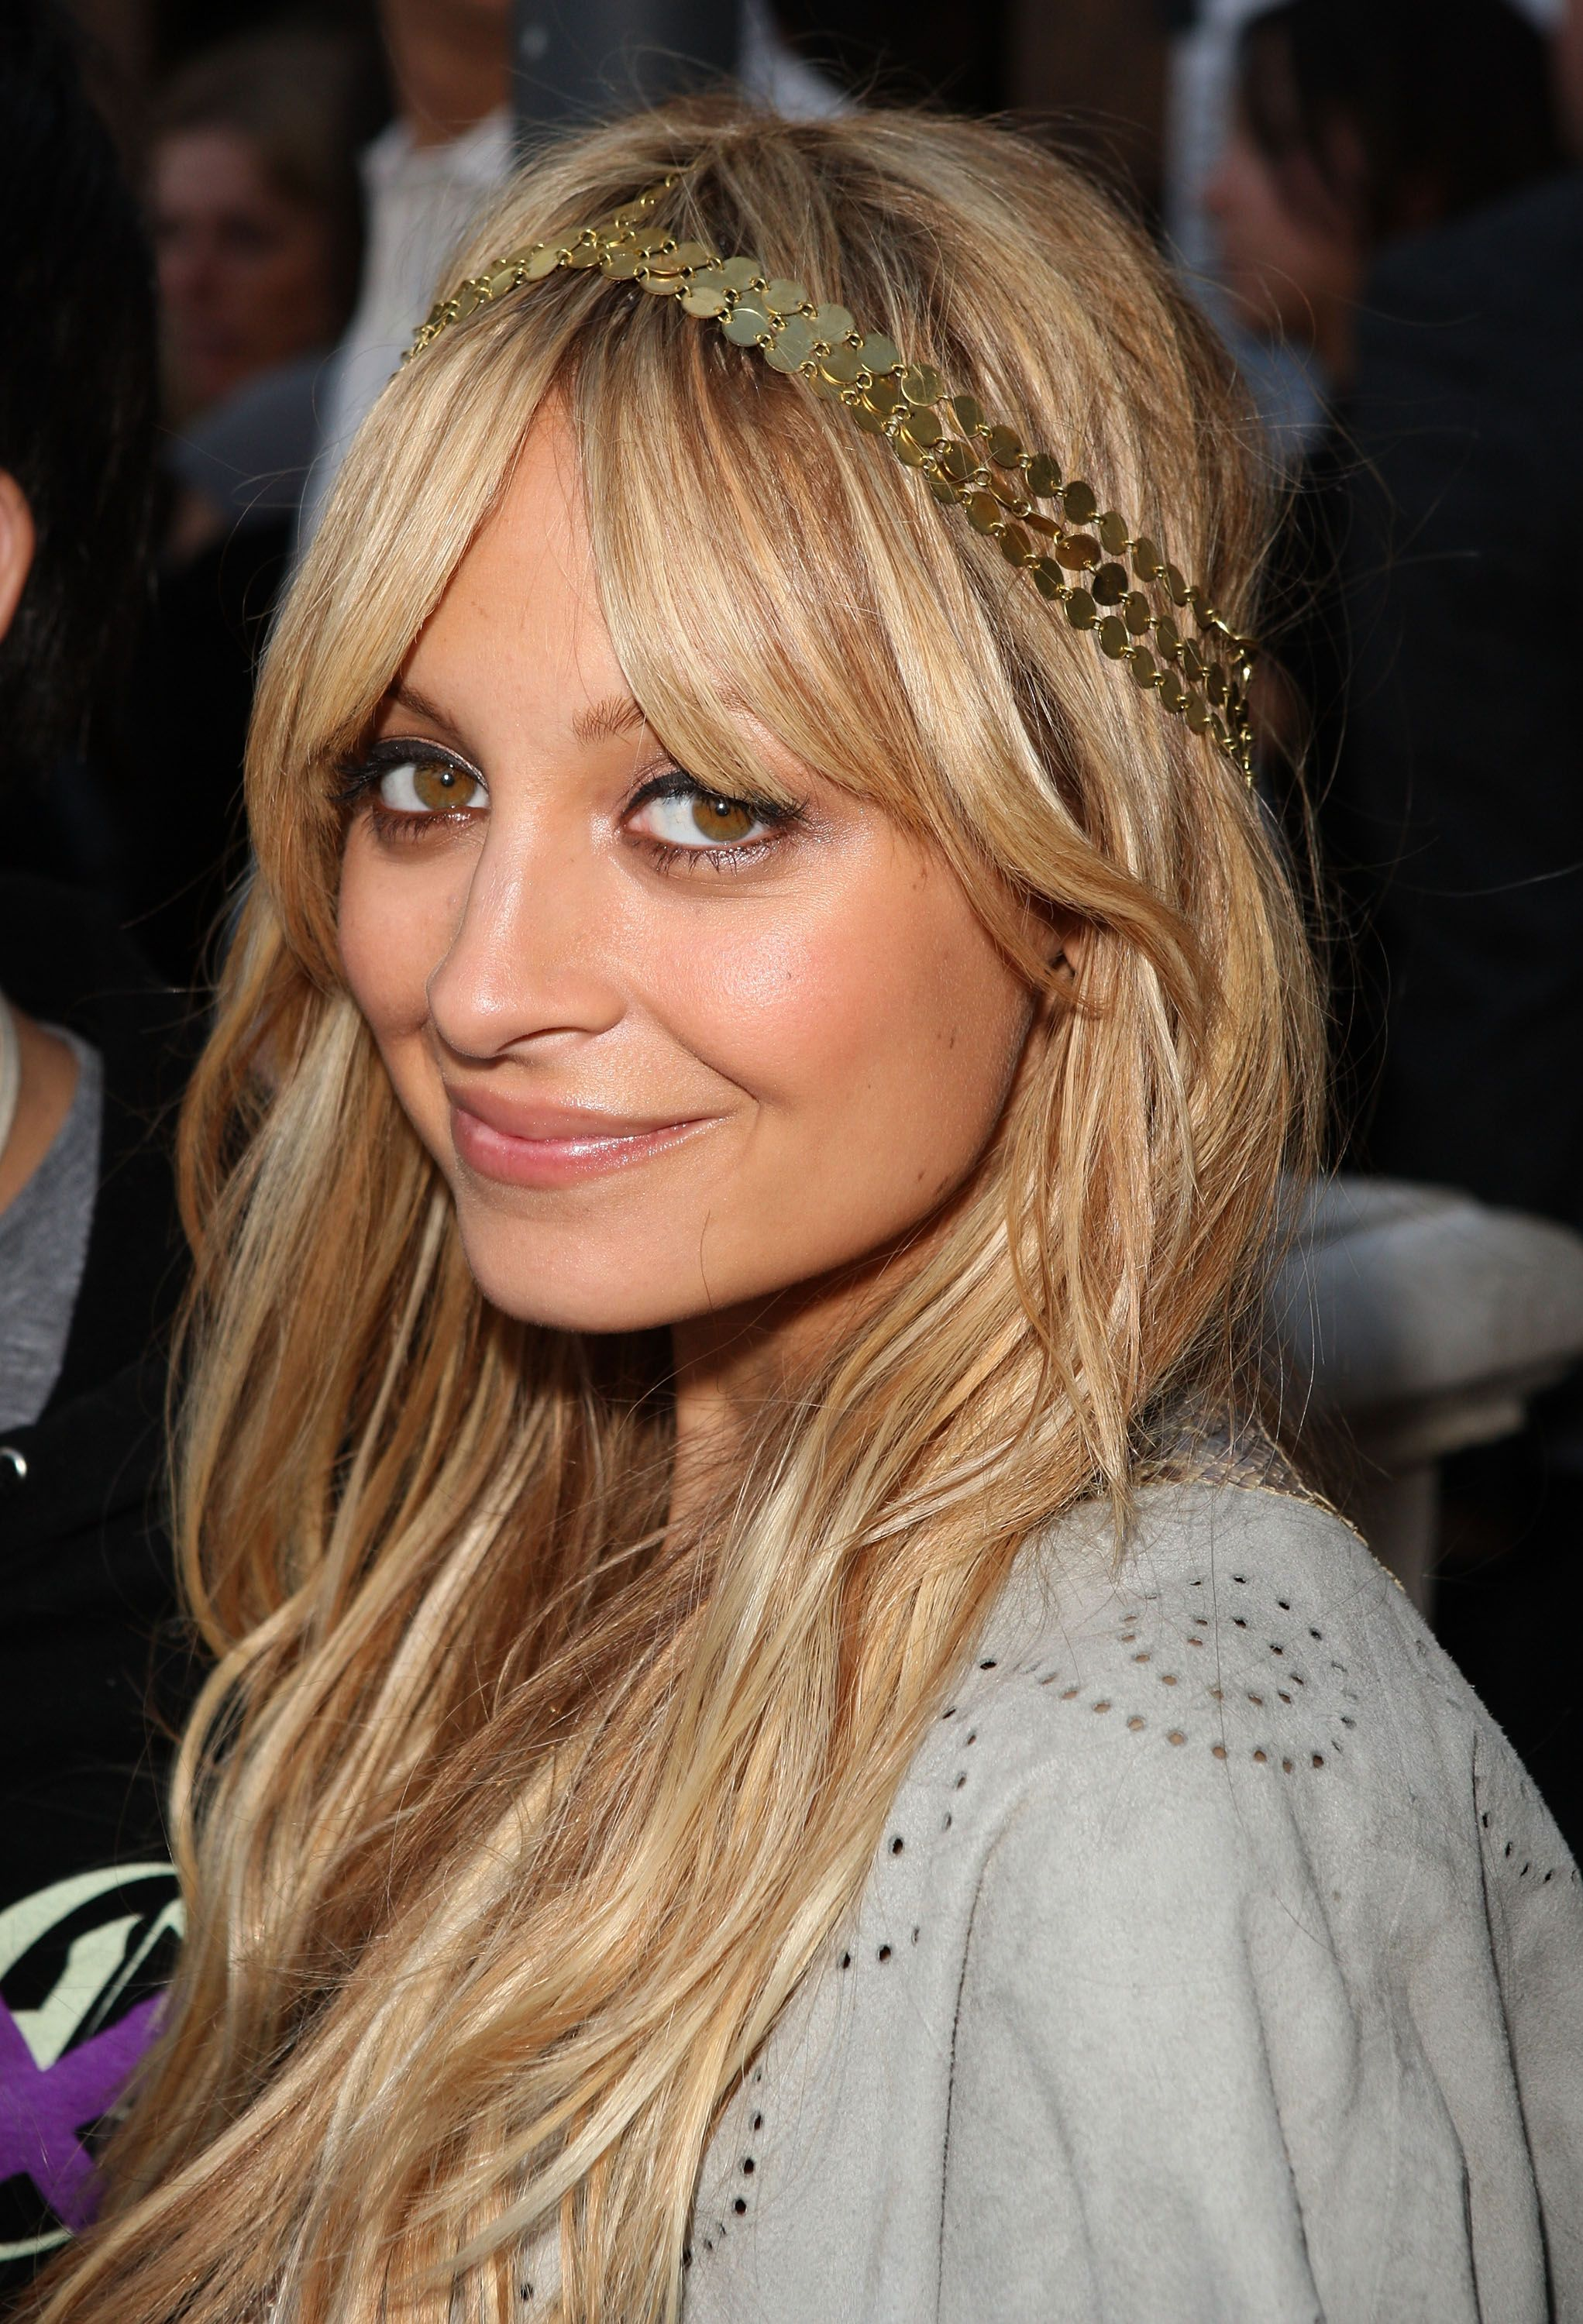 30 celebrity-inspired ways to wear a headband that won't give you